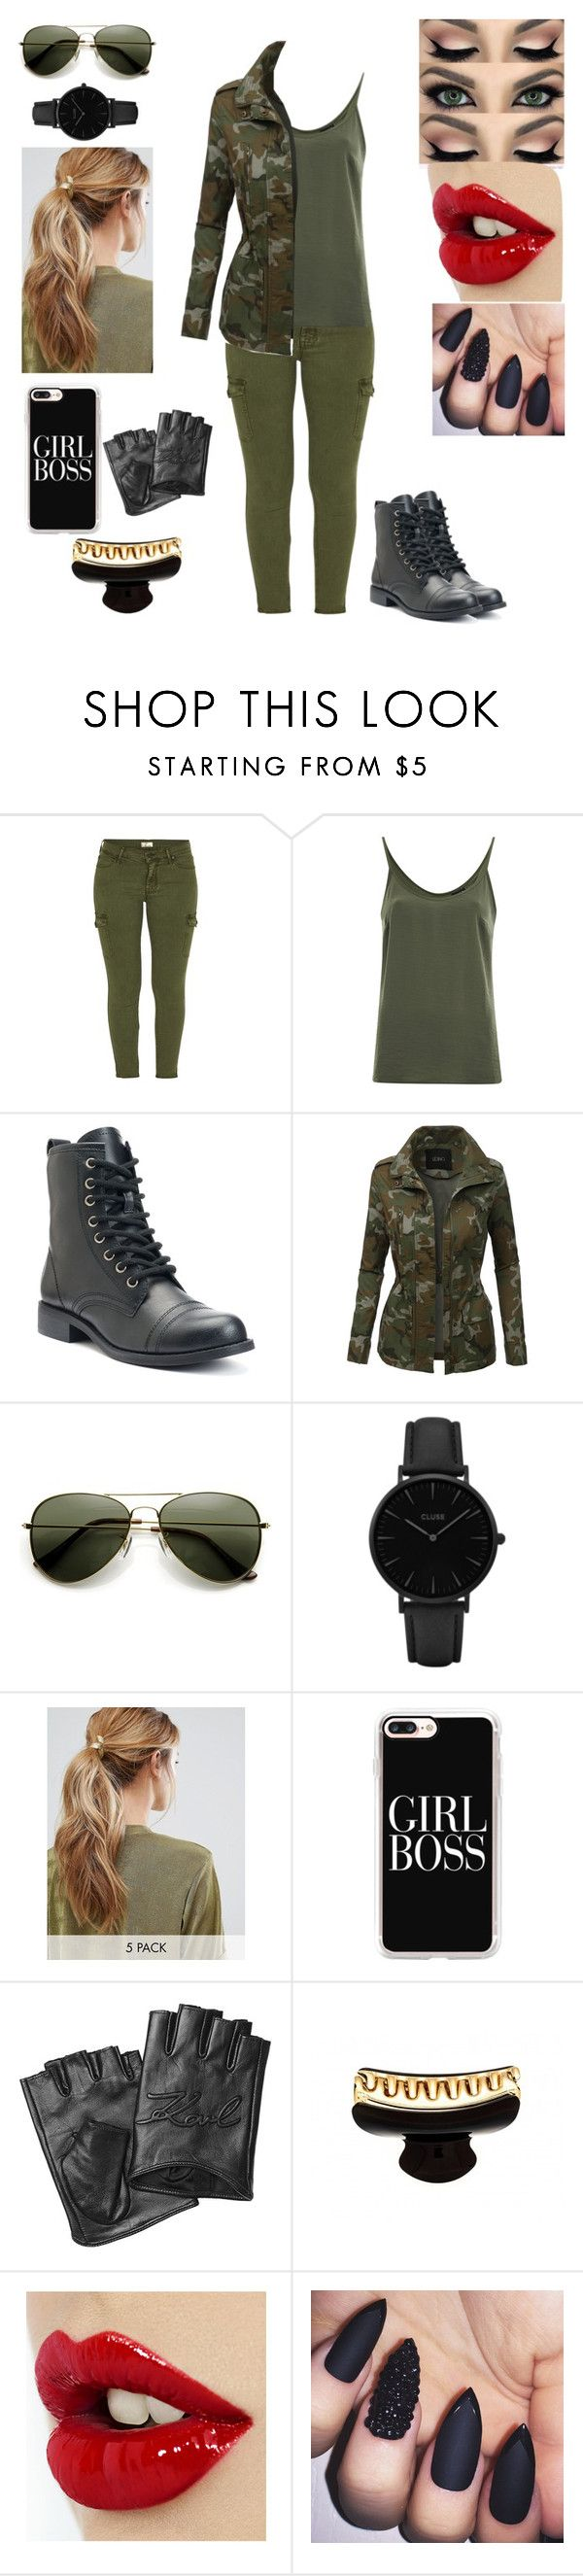 """""""Military girl"""" by erickscrazyladies ❤ liked on Polyvore featuring Mother, VILA, LE3NO, CLUSE, Kitsch, Casetify and Karl Lagerfeld"""